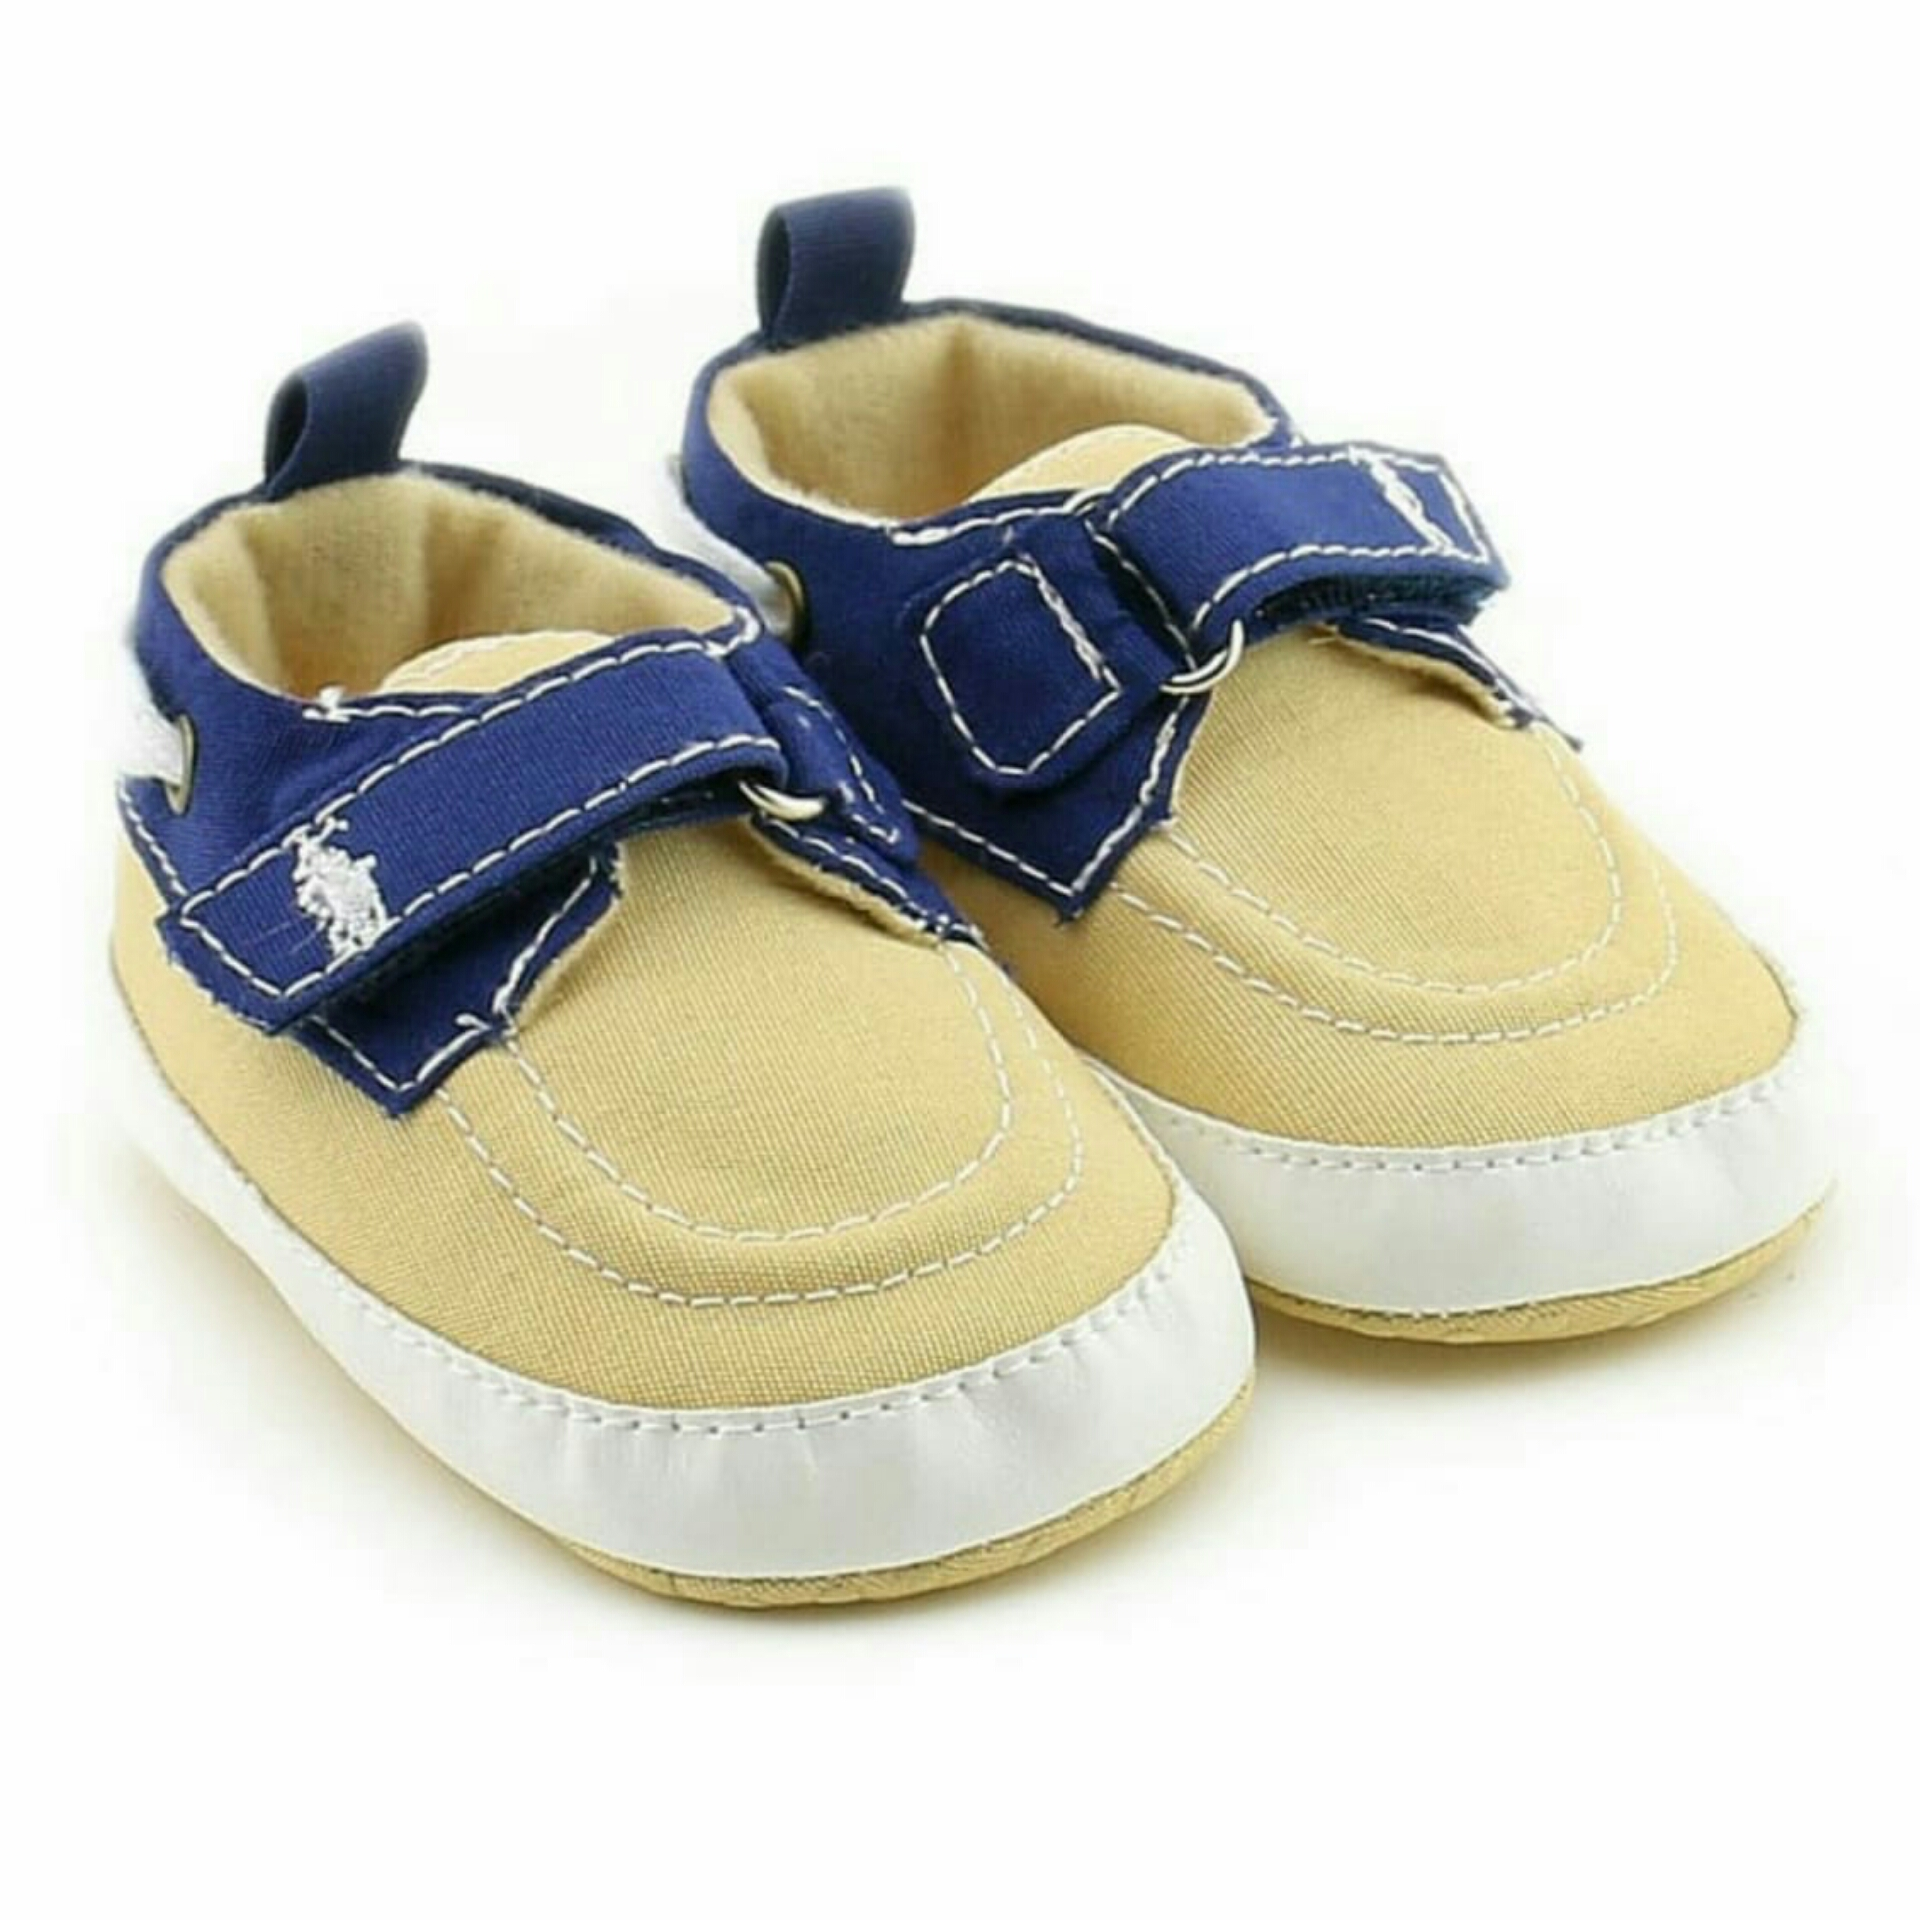 Sepatu Bayi Prewalker Shoes By Freddie The Frog Blue Lagoon Spec Tony Sparkly Grey 3 6 Bulan Yellow Prepet Usia 0 18